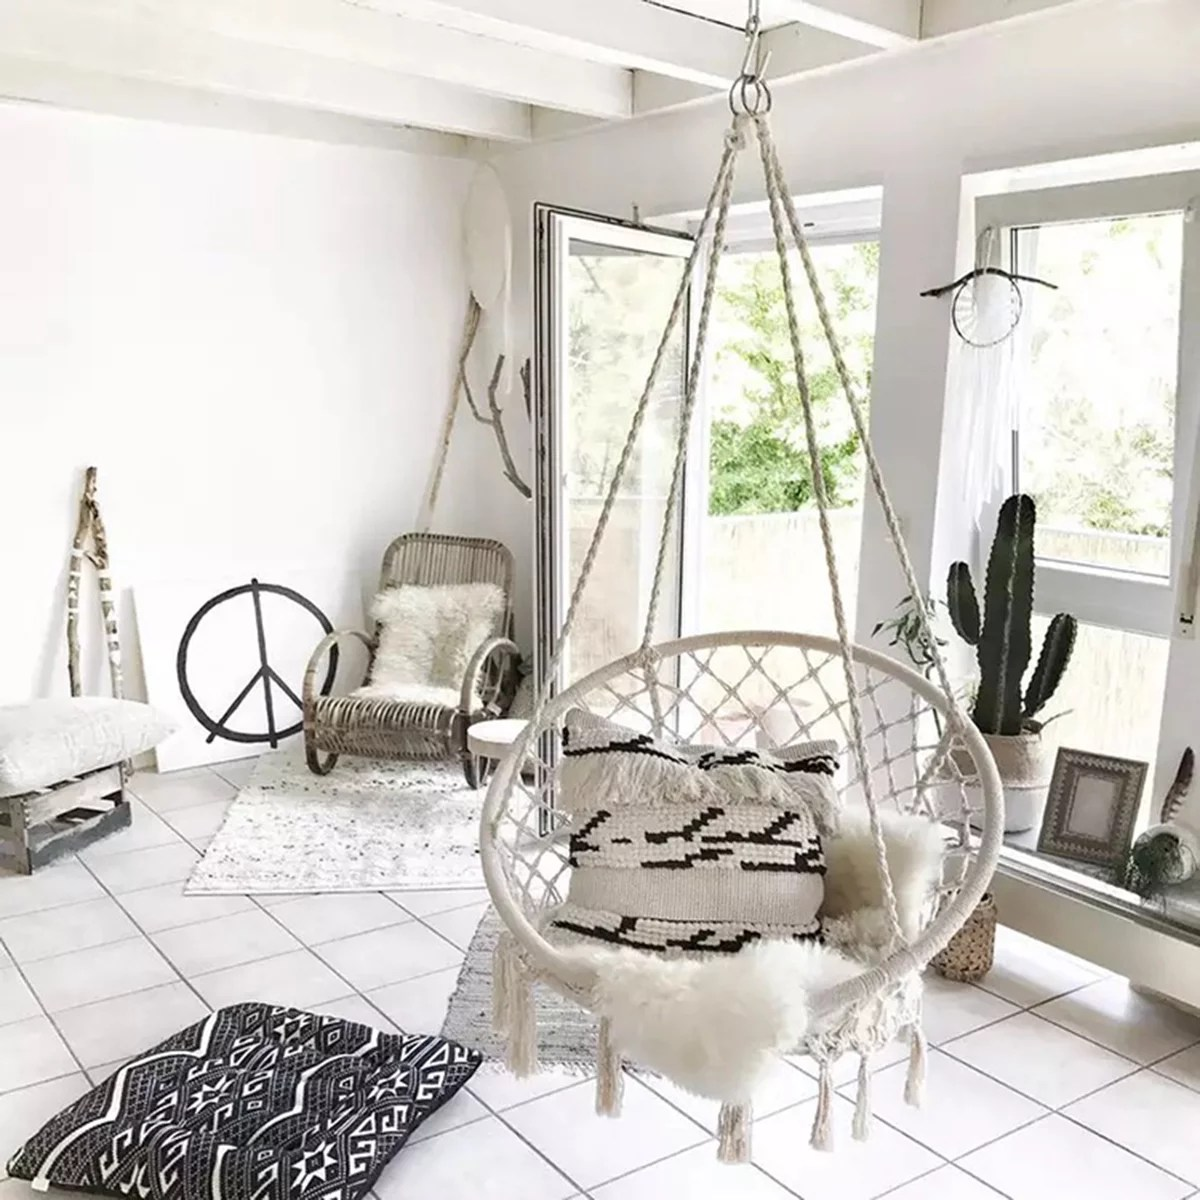 bedroom hanging chair posture care company prices outdoor chairs walmart com product image 47 2 indoor macrame hammock swing cotton rope garden 260lb